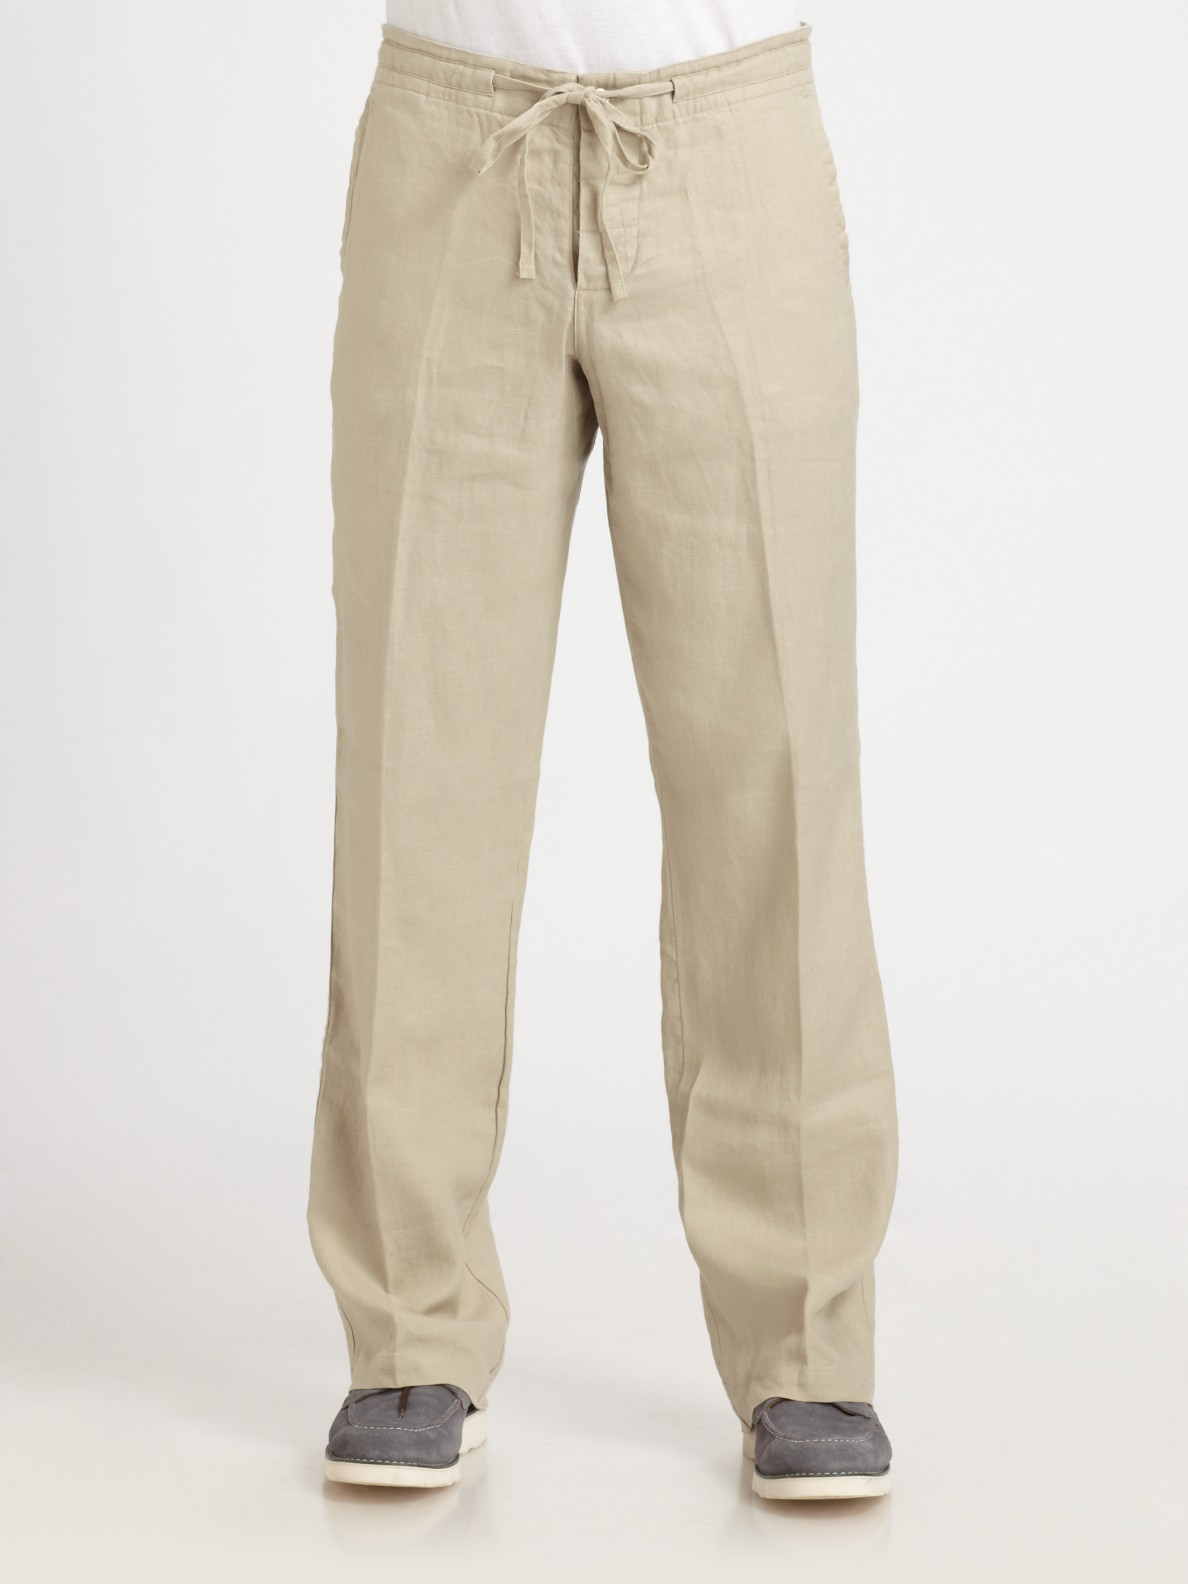 Drawstring Linen Pants For Men